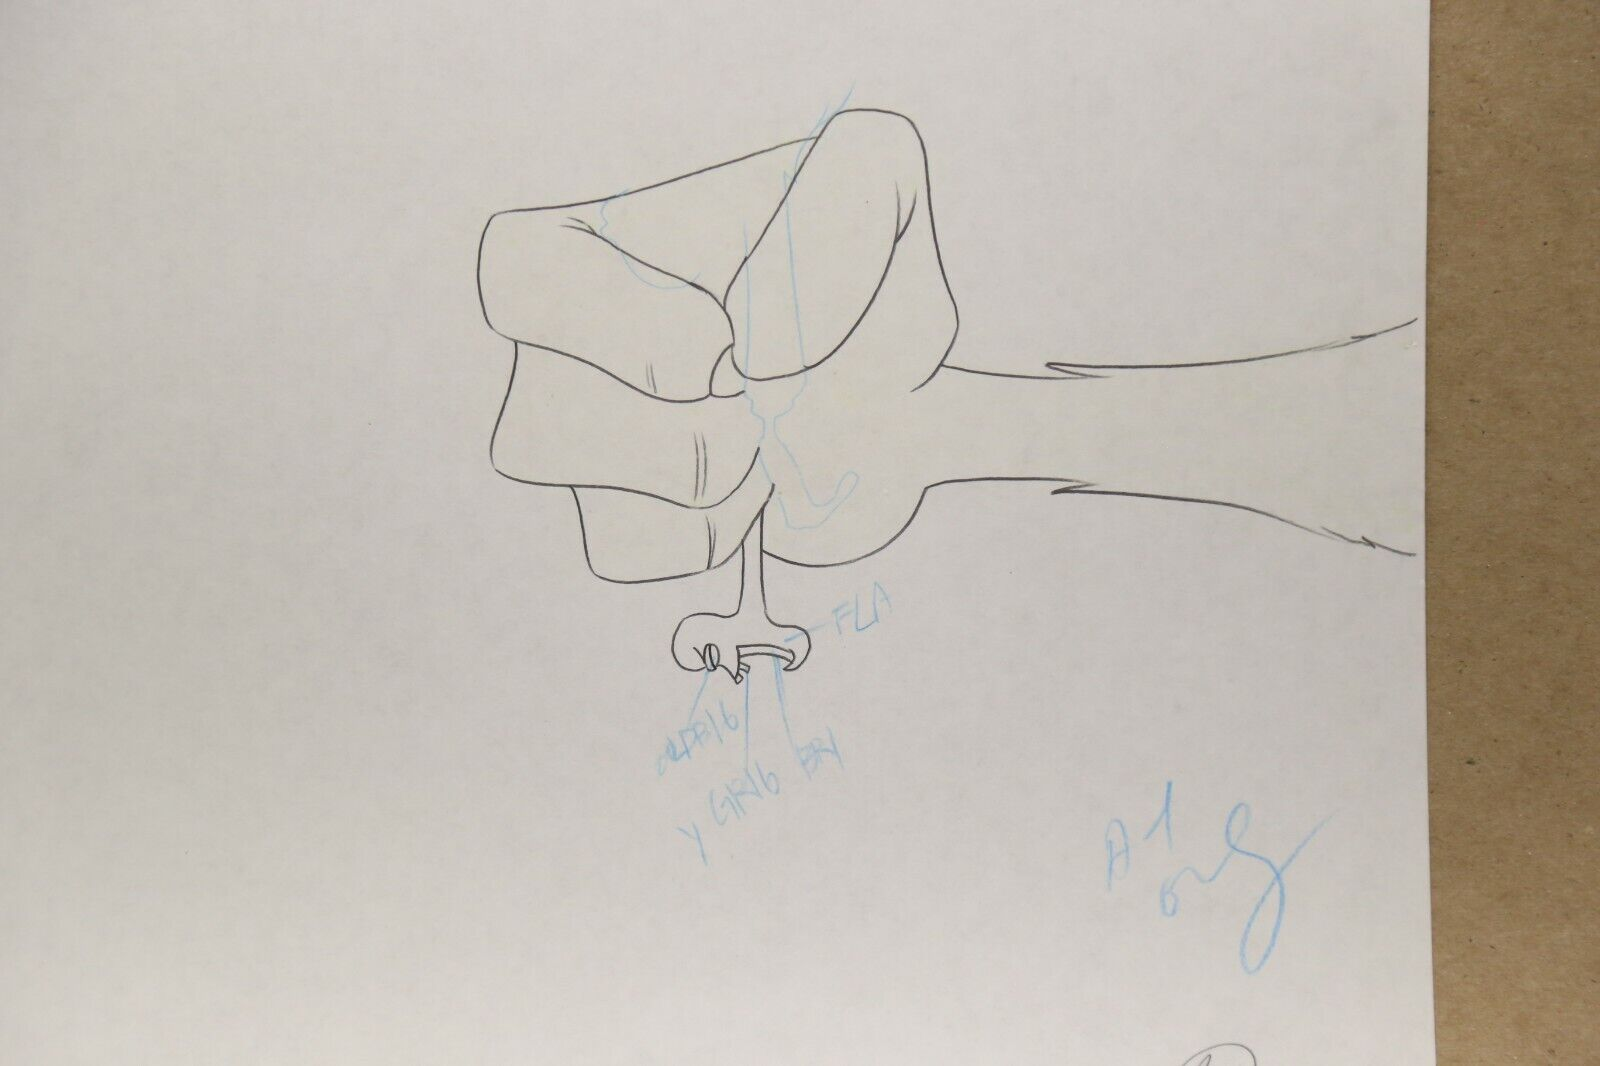 Beetlejuice Original Production Drawing And Cel 43-69 Used Cond. - $34.99